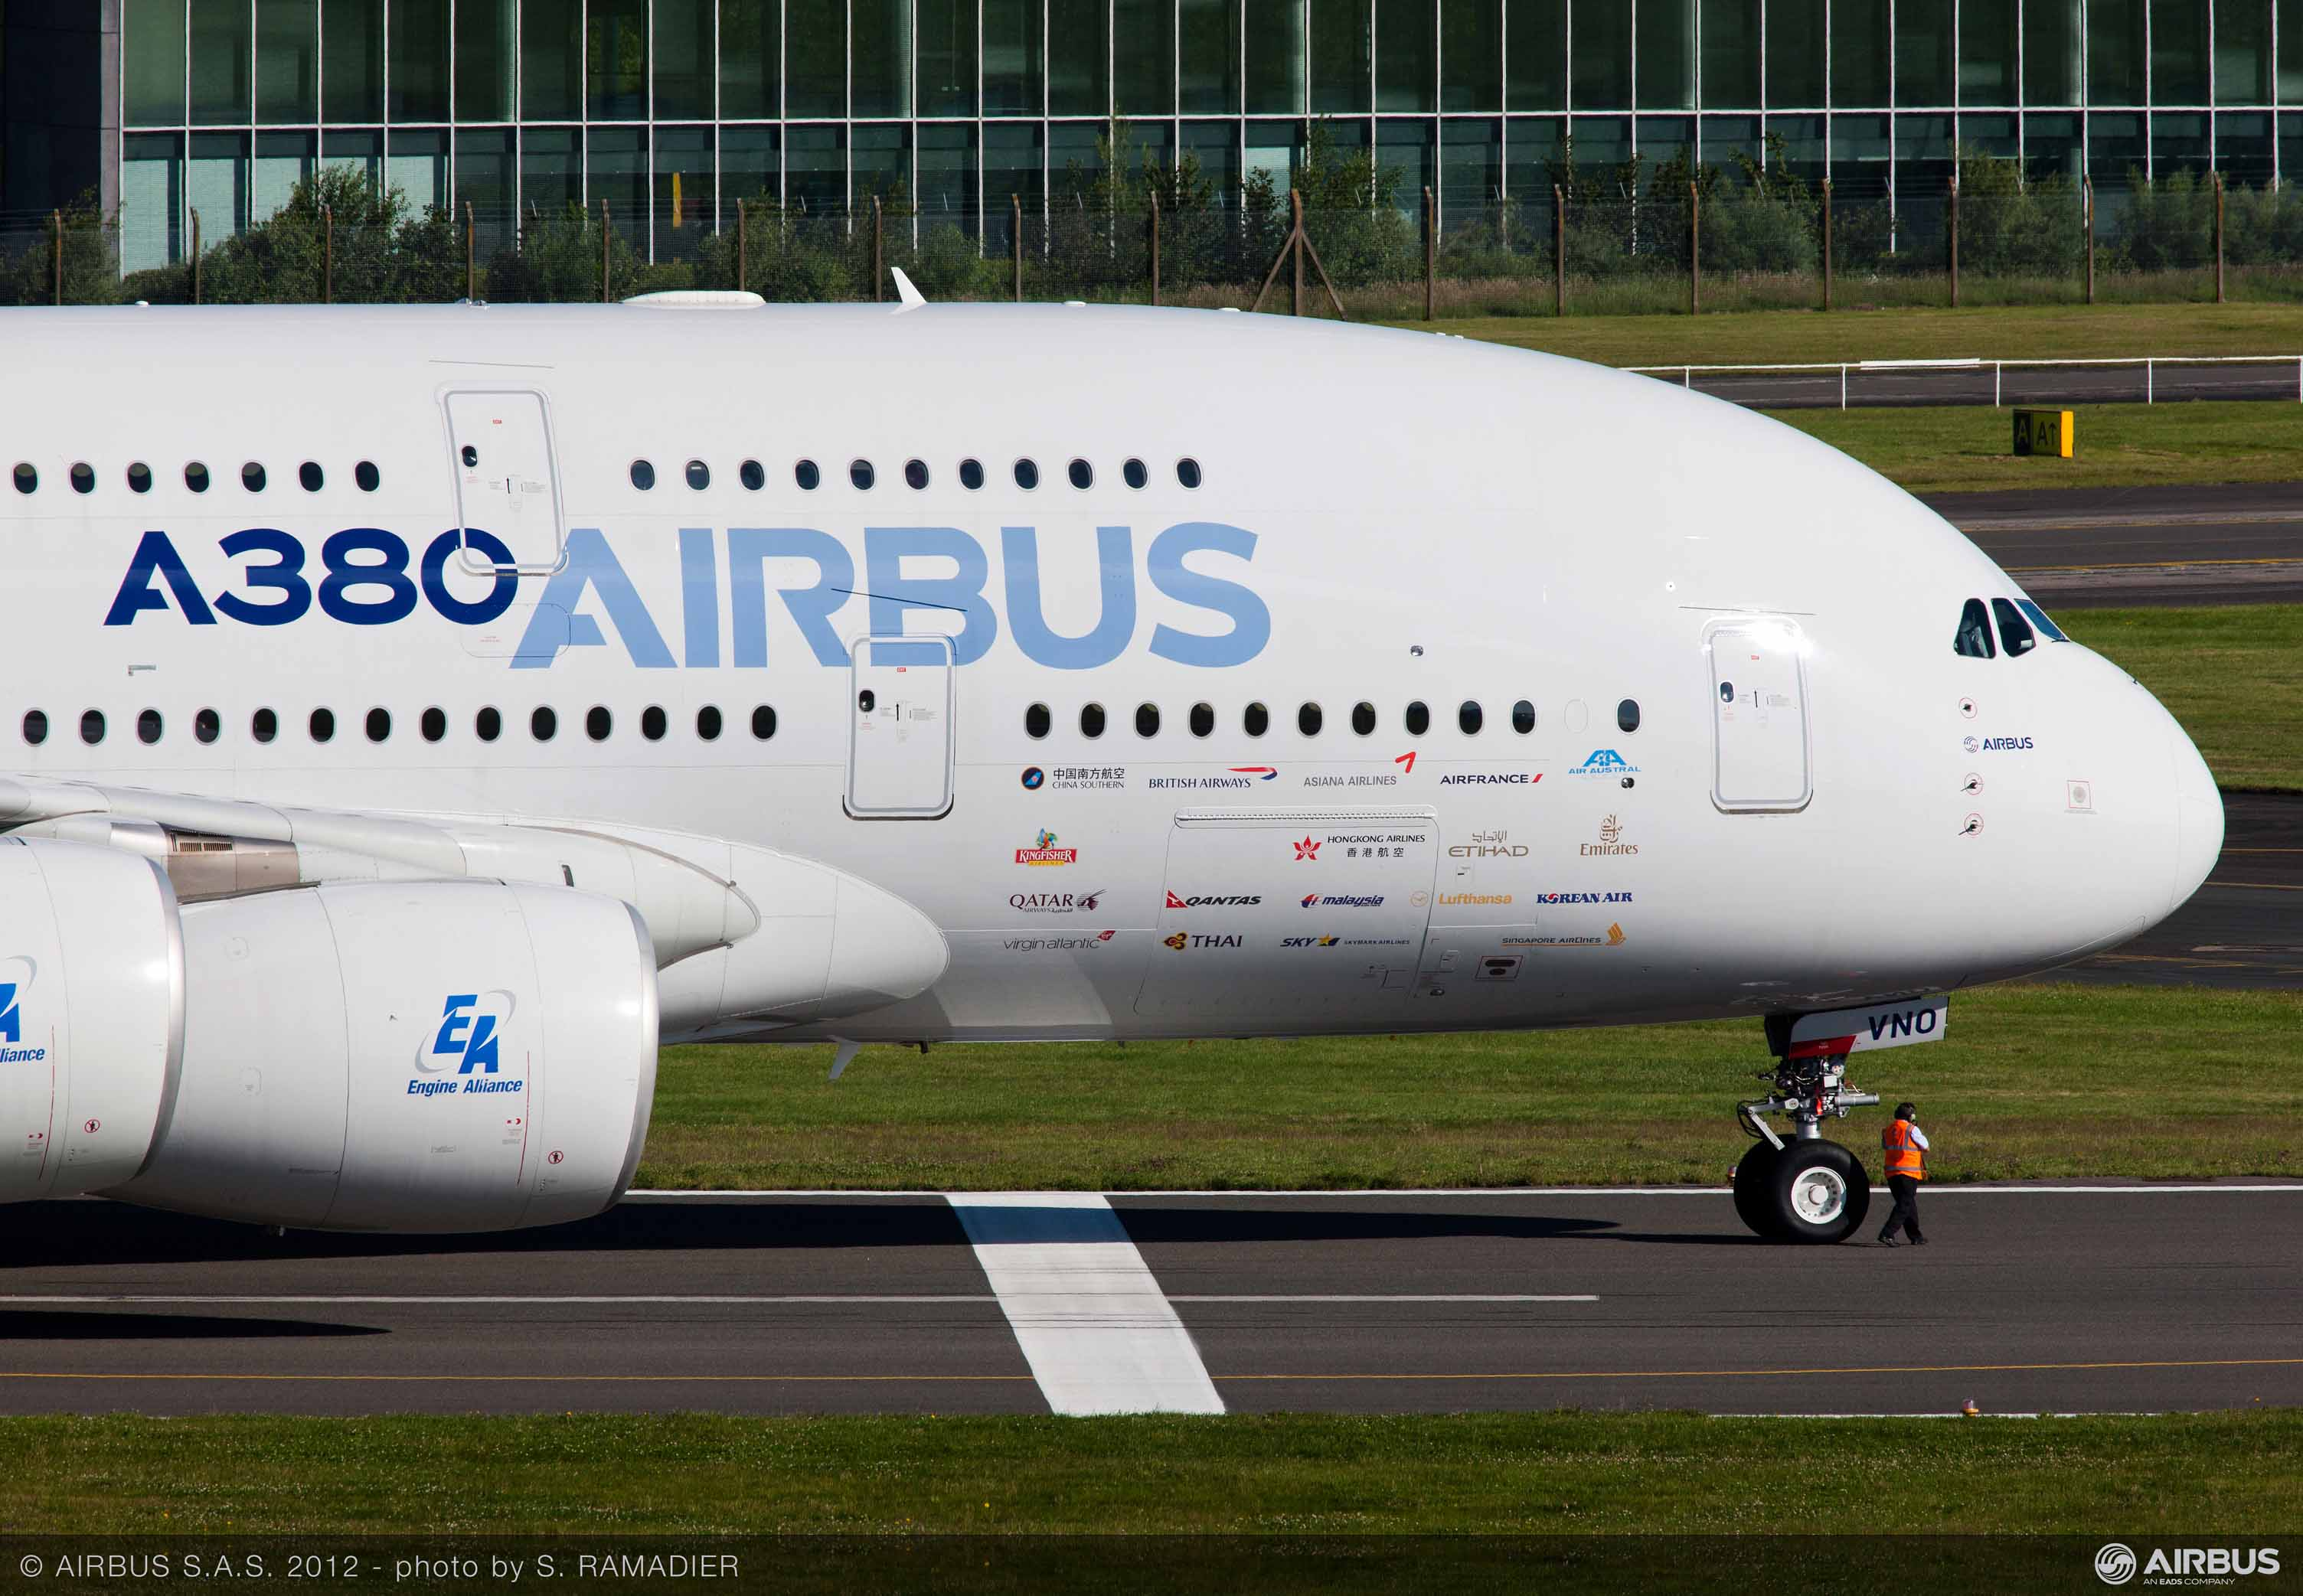 Airbus A380. Source: Airbus